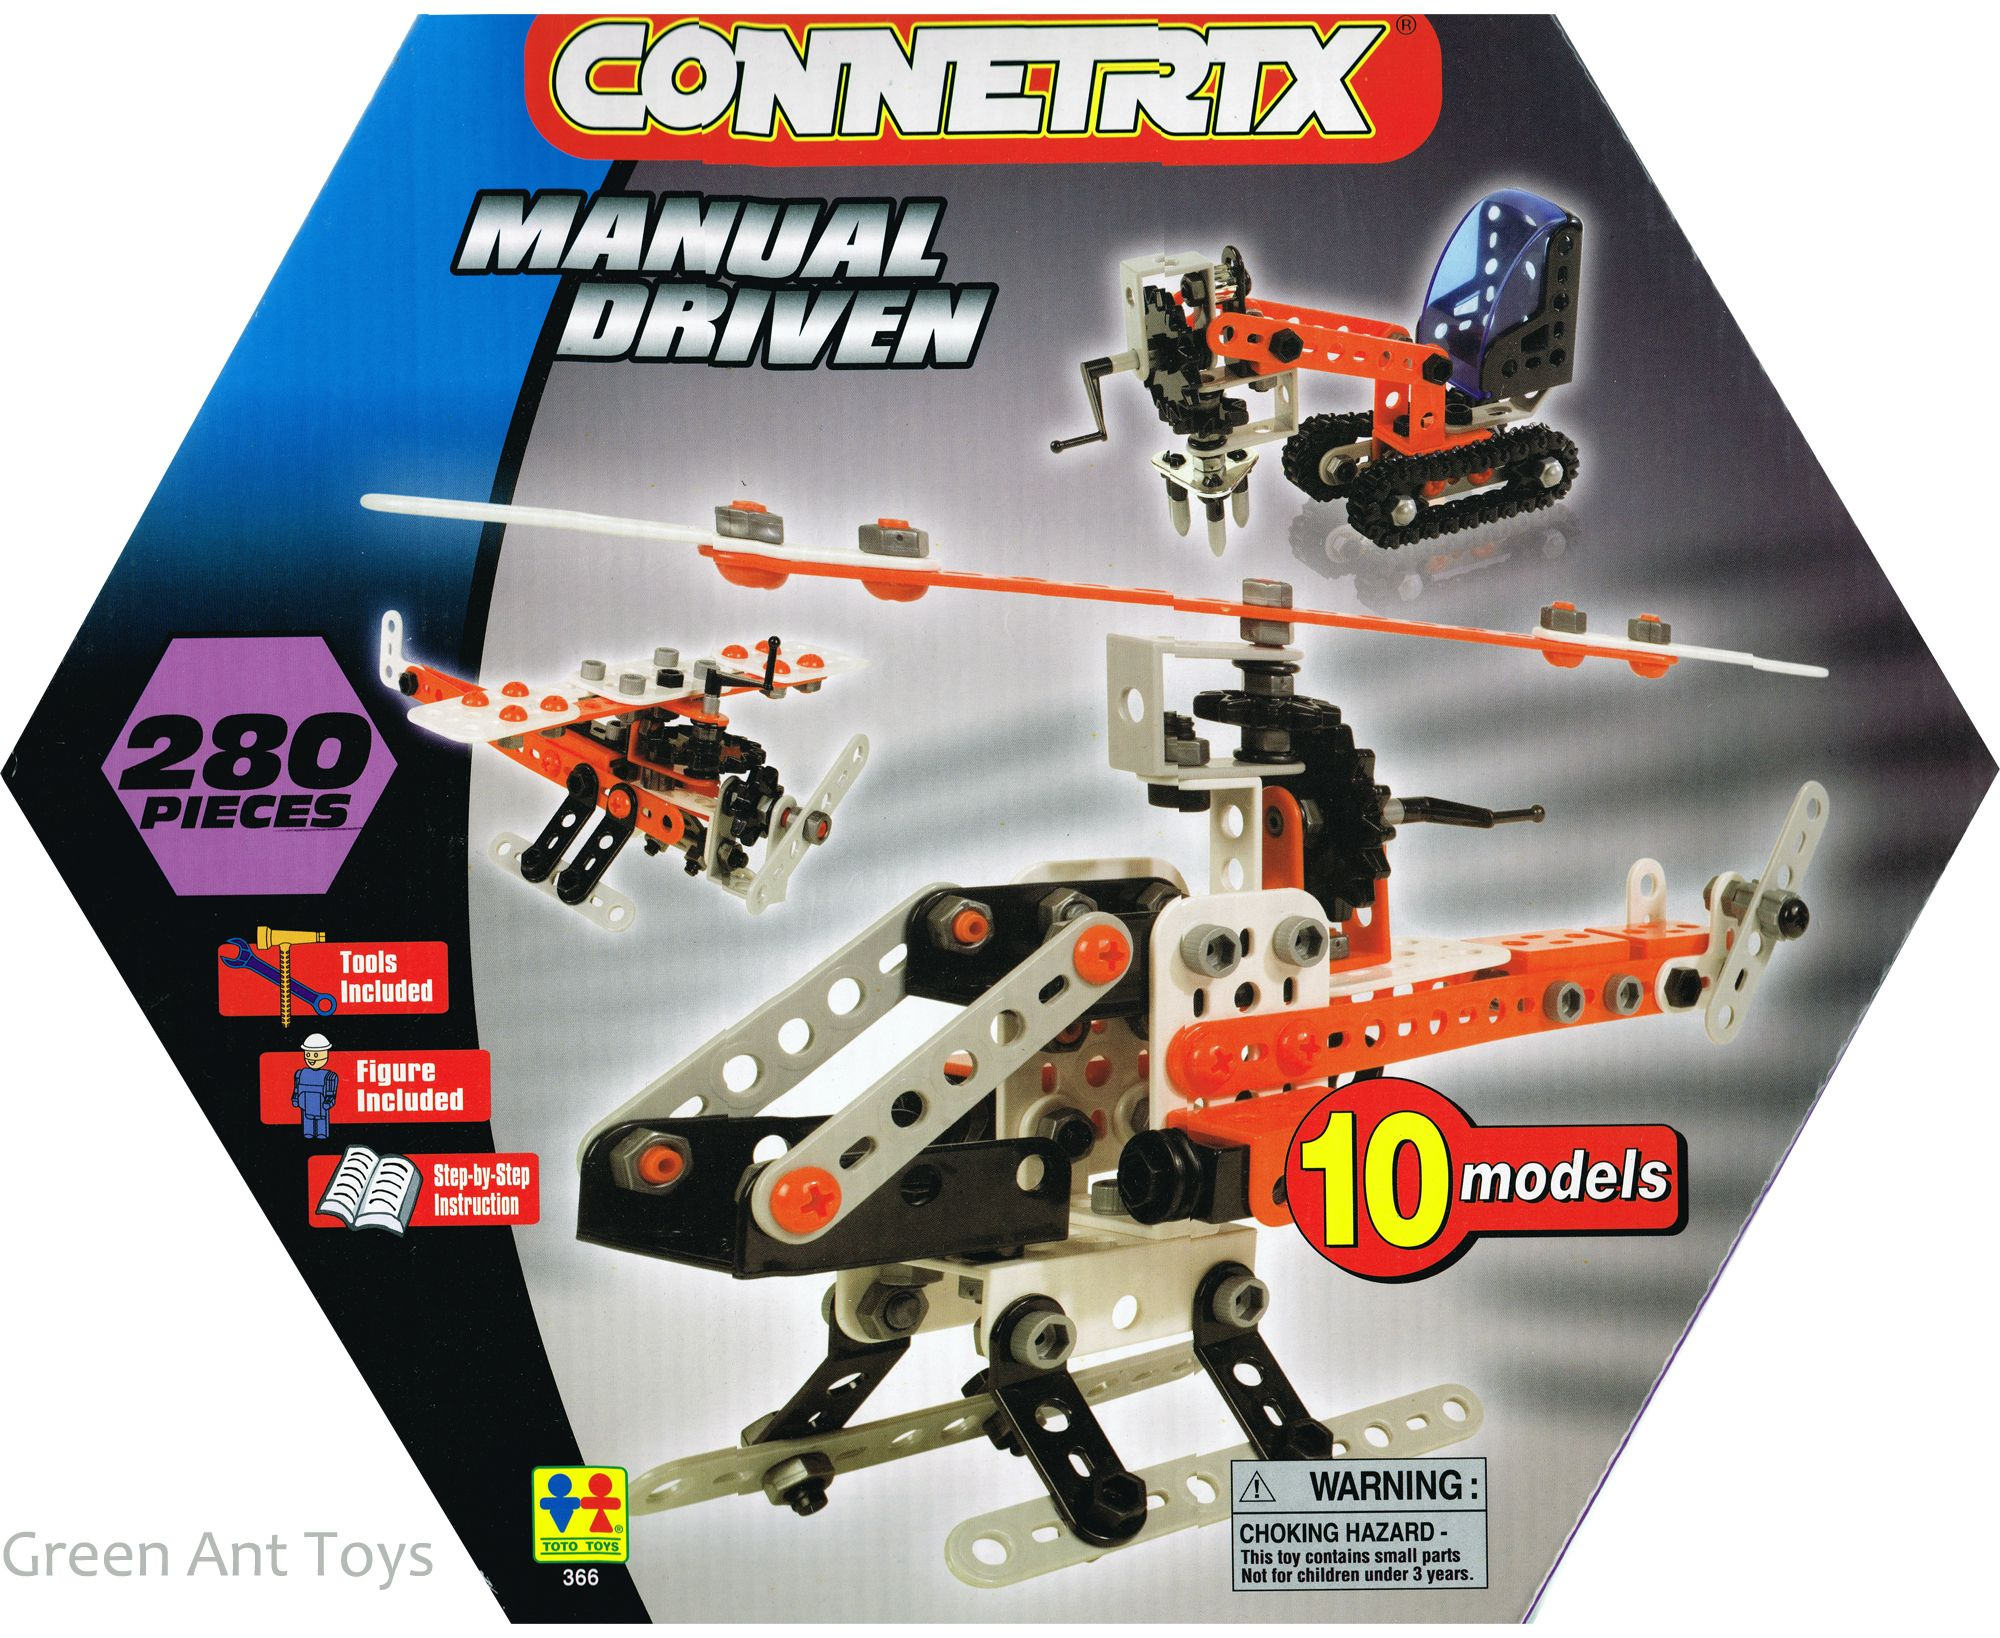 Connetrix Kids Construction Toys Manual Driven From Green Ant Toys